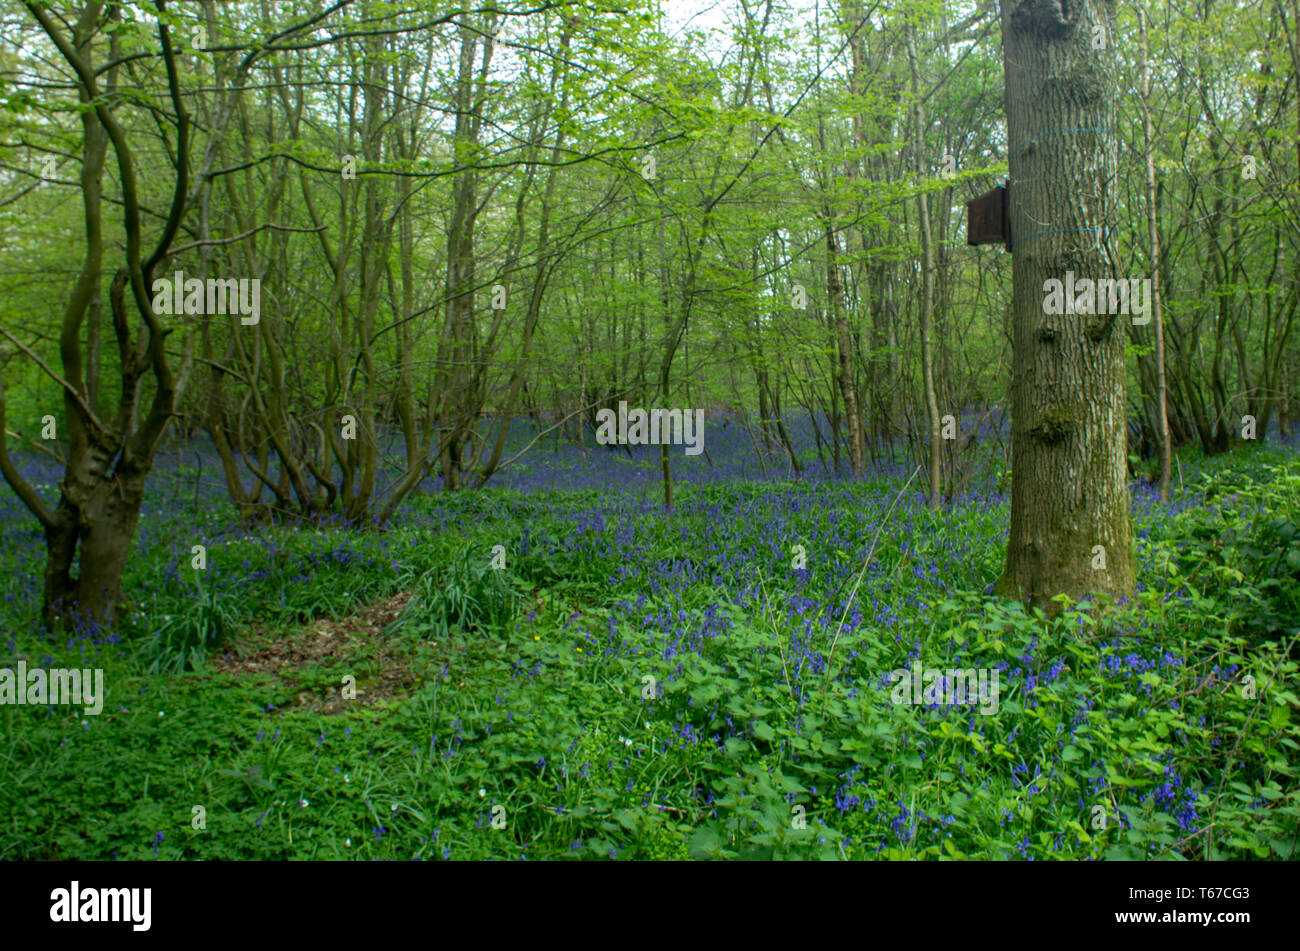 Bluebells carpet a woodland glade. An old oak with a birdbox in the foreground - Stock Image